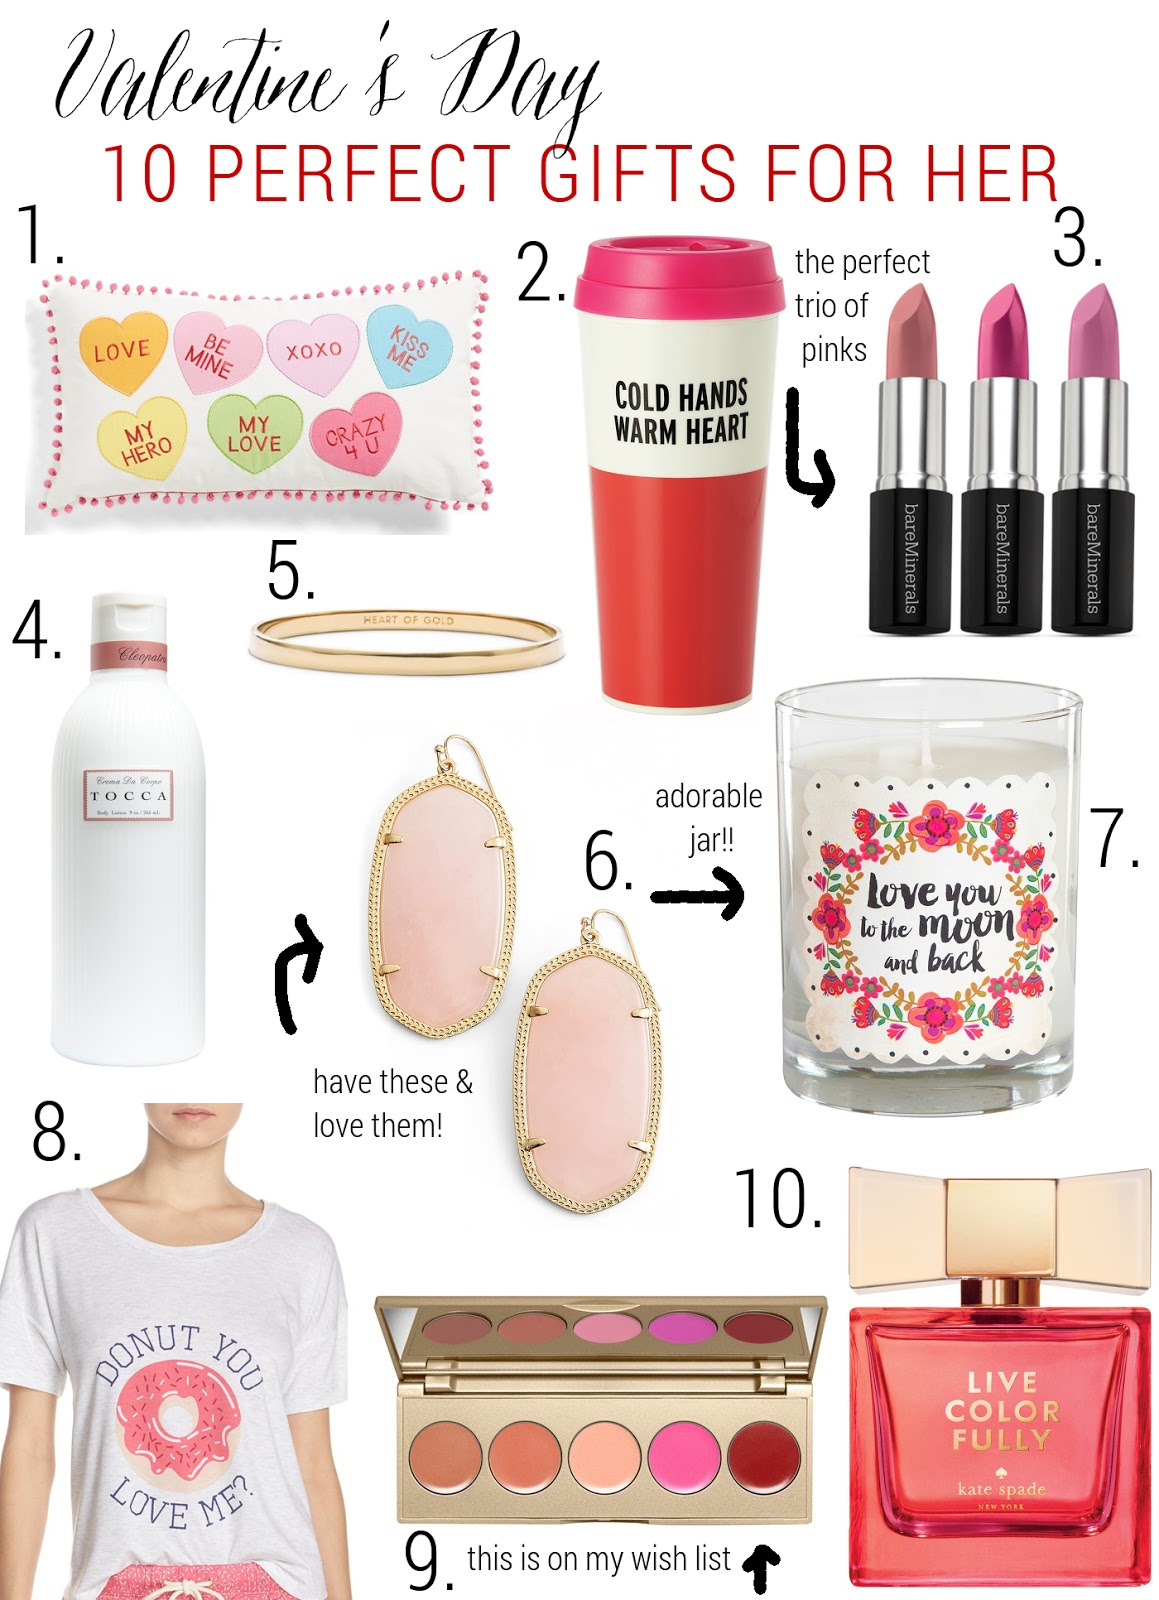 Belle in the city a north carolina diy lifestyle blog for A perfect valentines gift for her